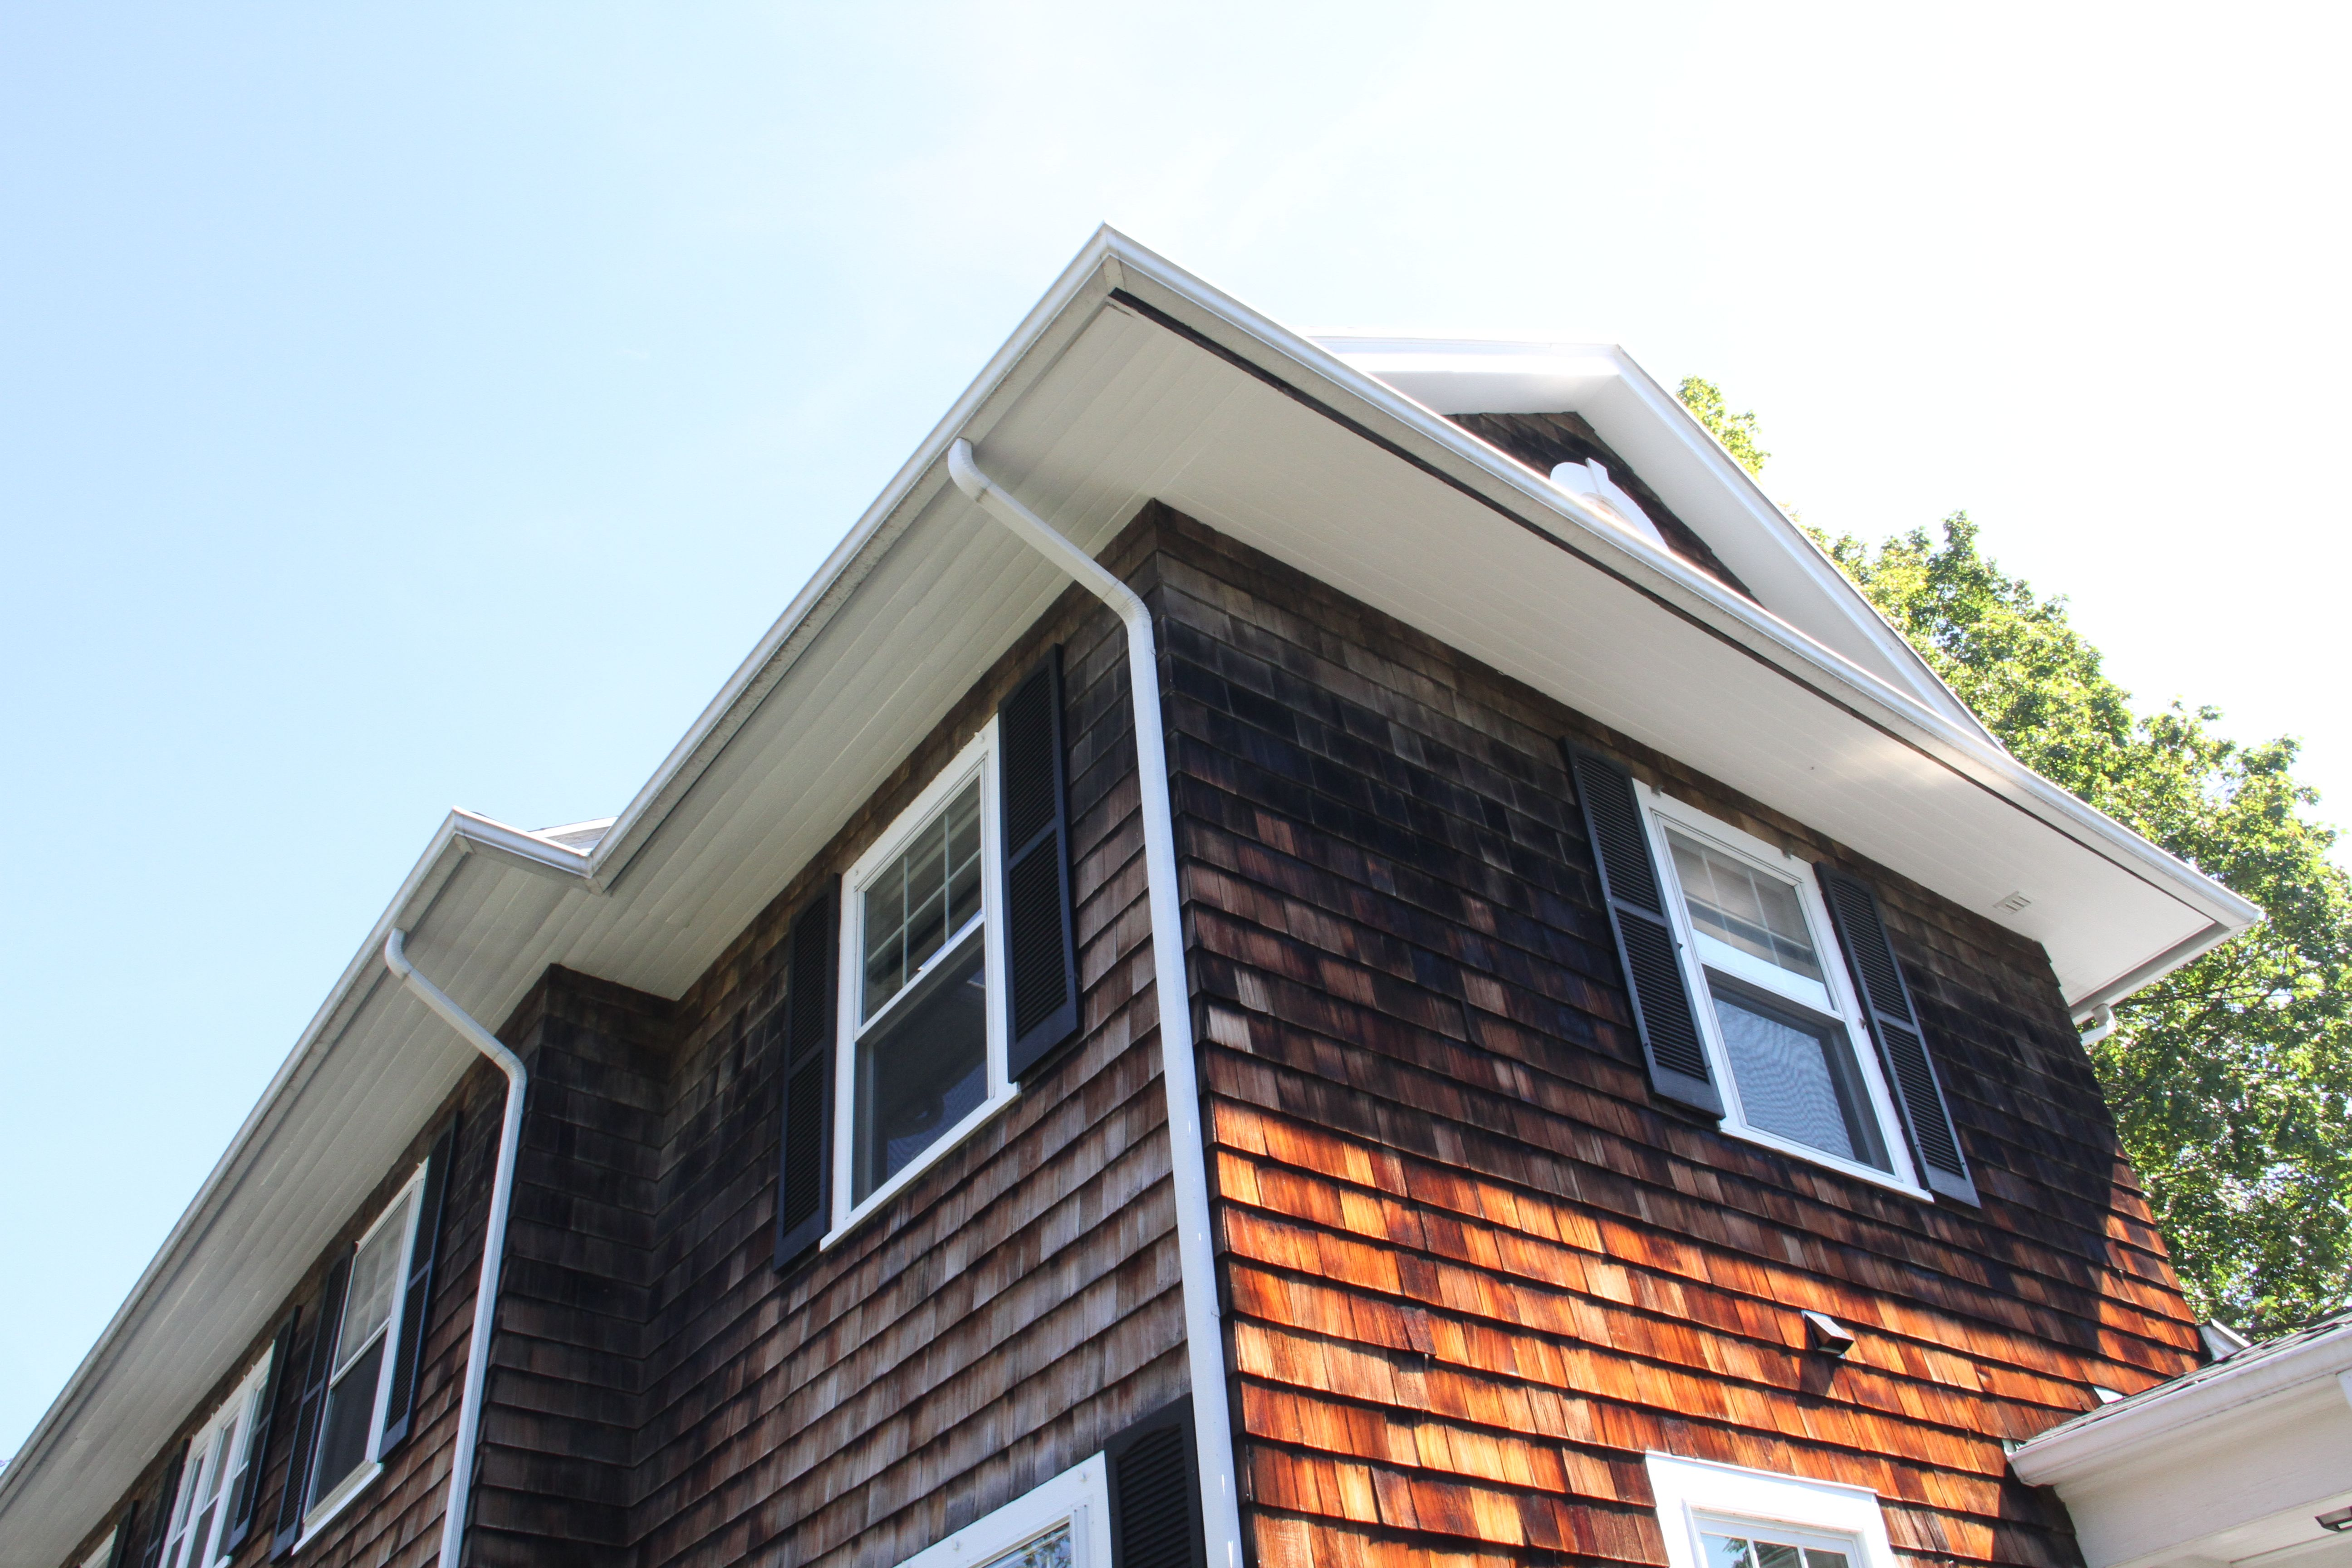 When I left this eave had been halfway scraped and primed. When I got back it was done.